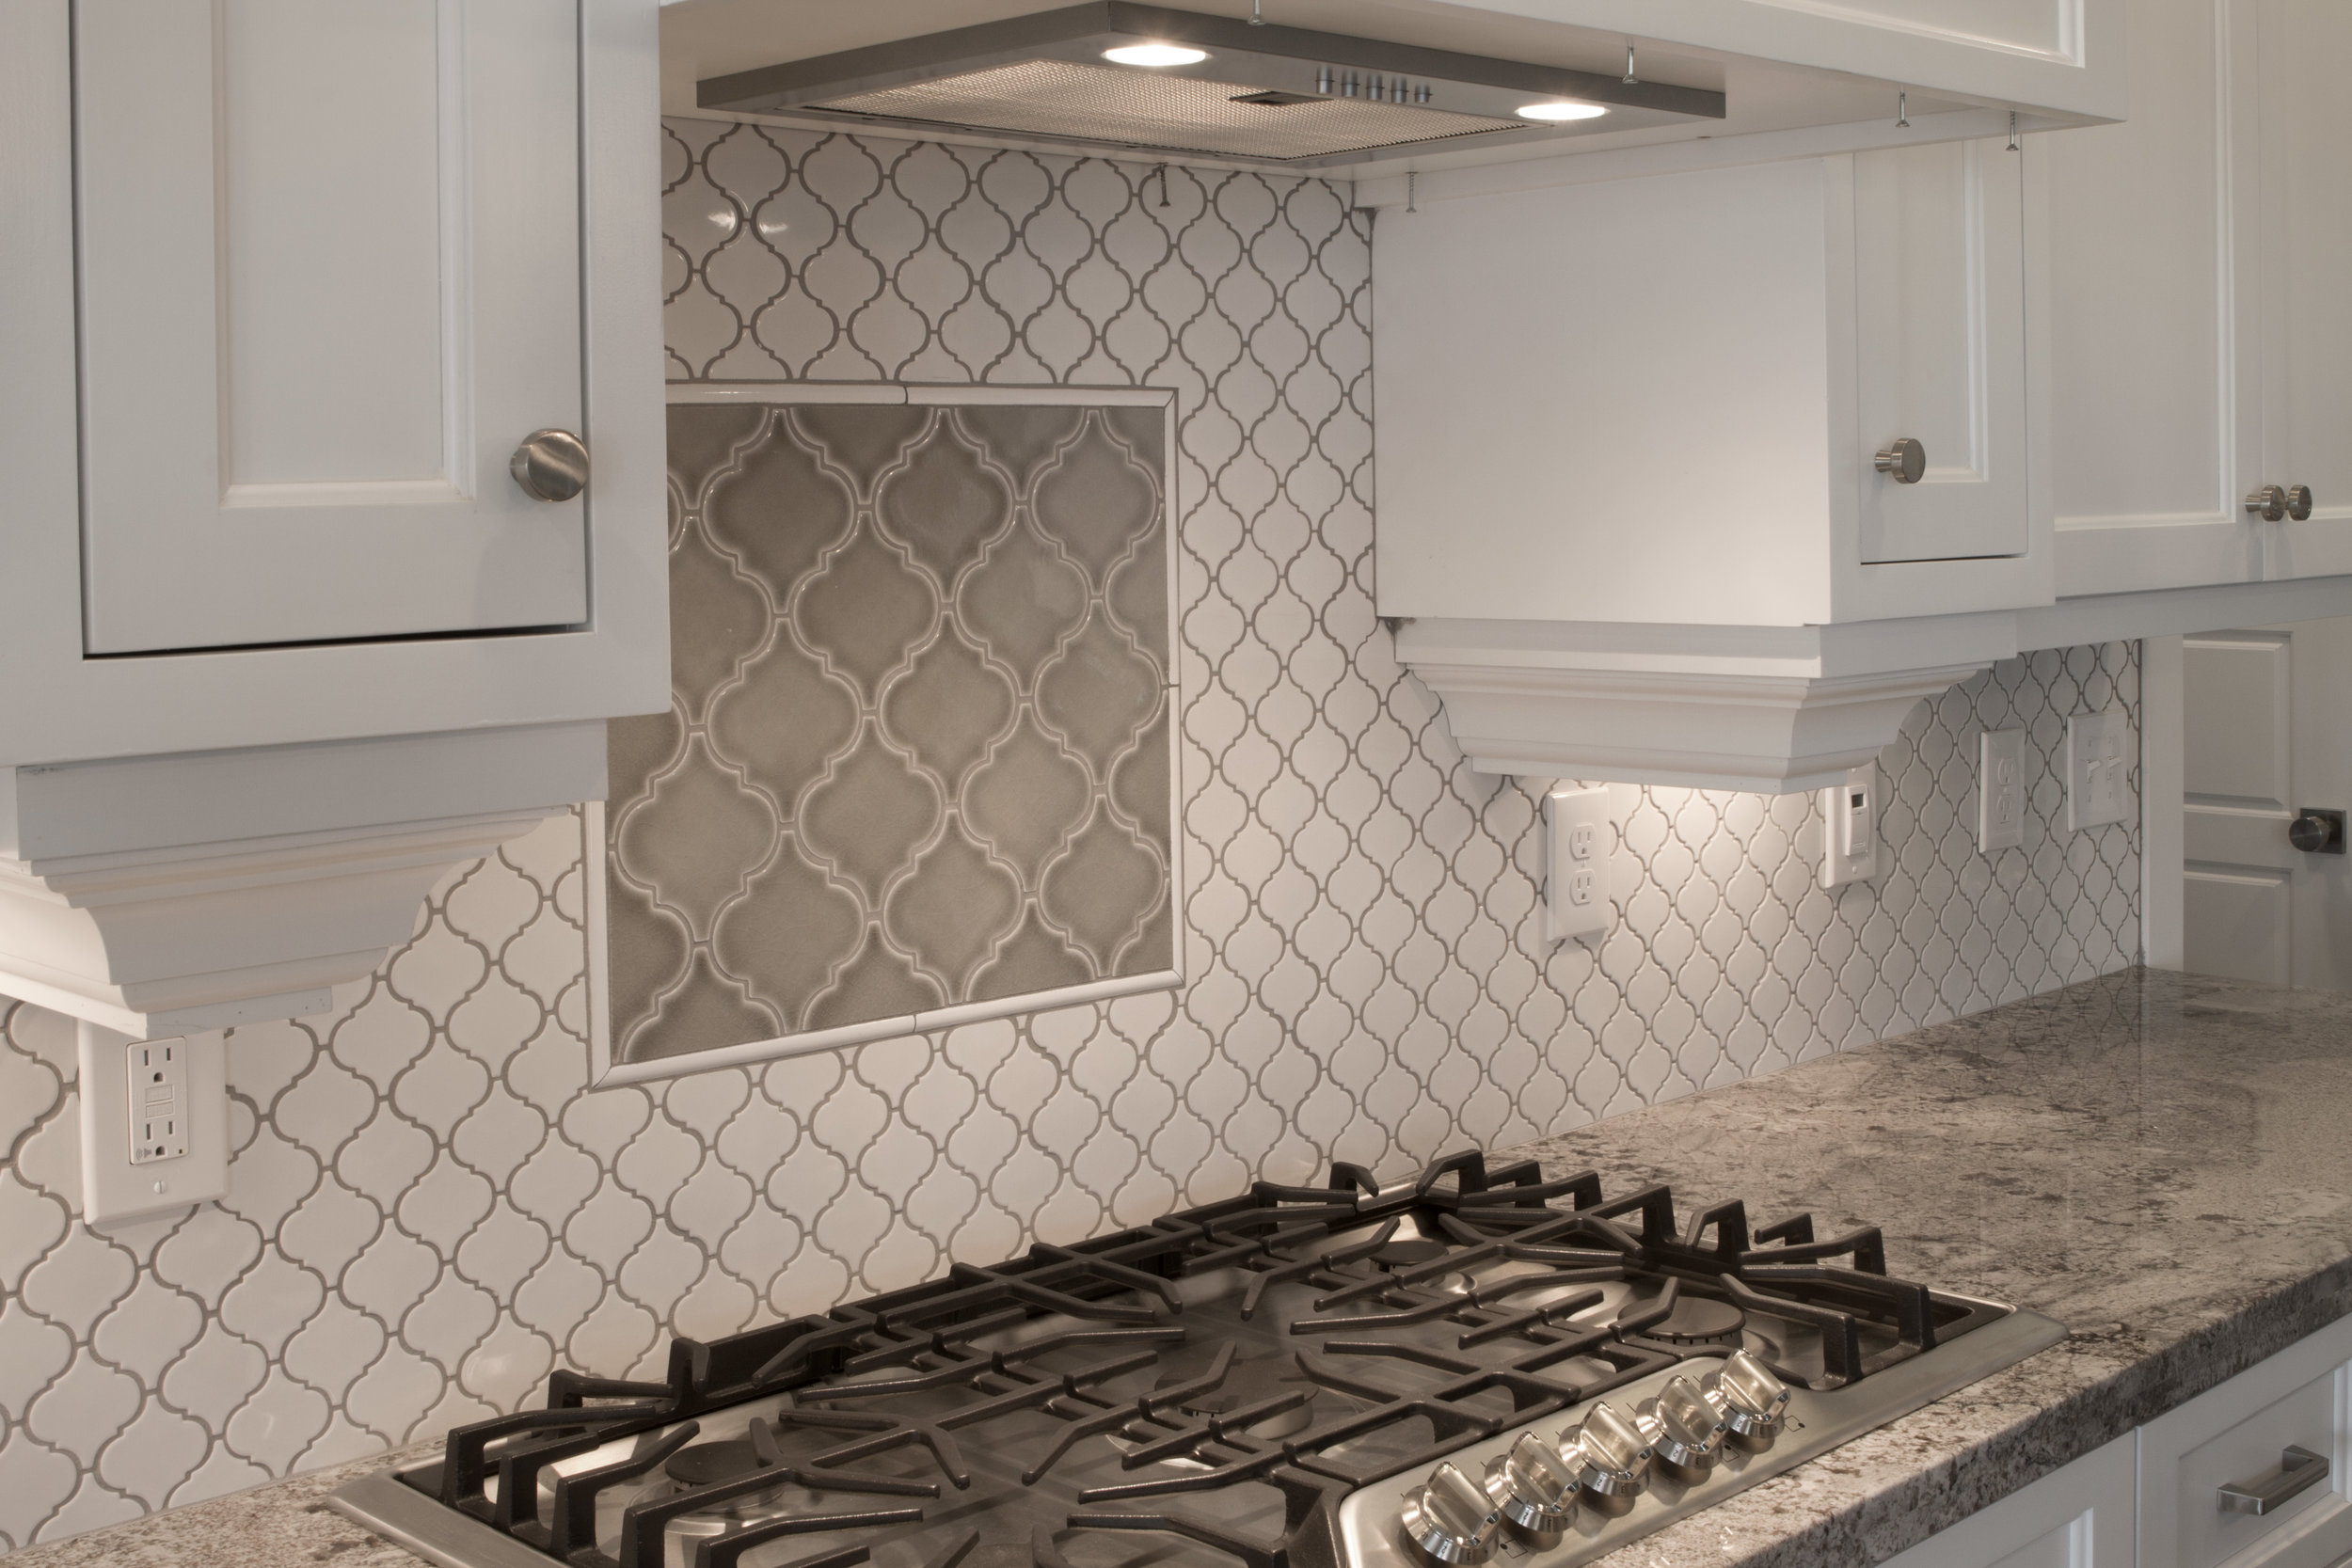 - New Kitchen & Bathroom Tile Backsplash Installation - Rigby — 5 Star